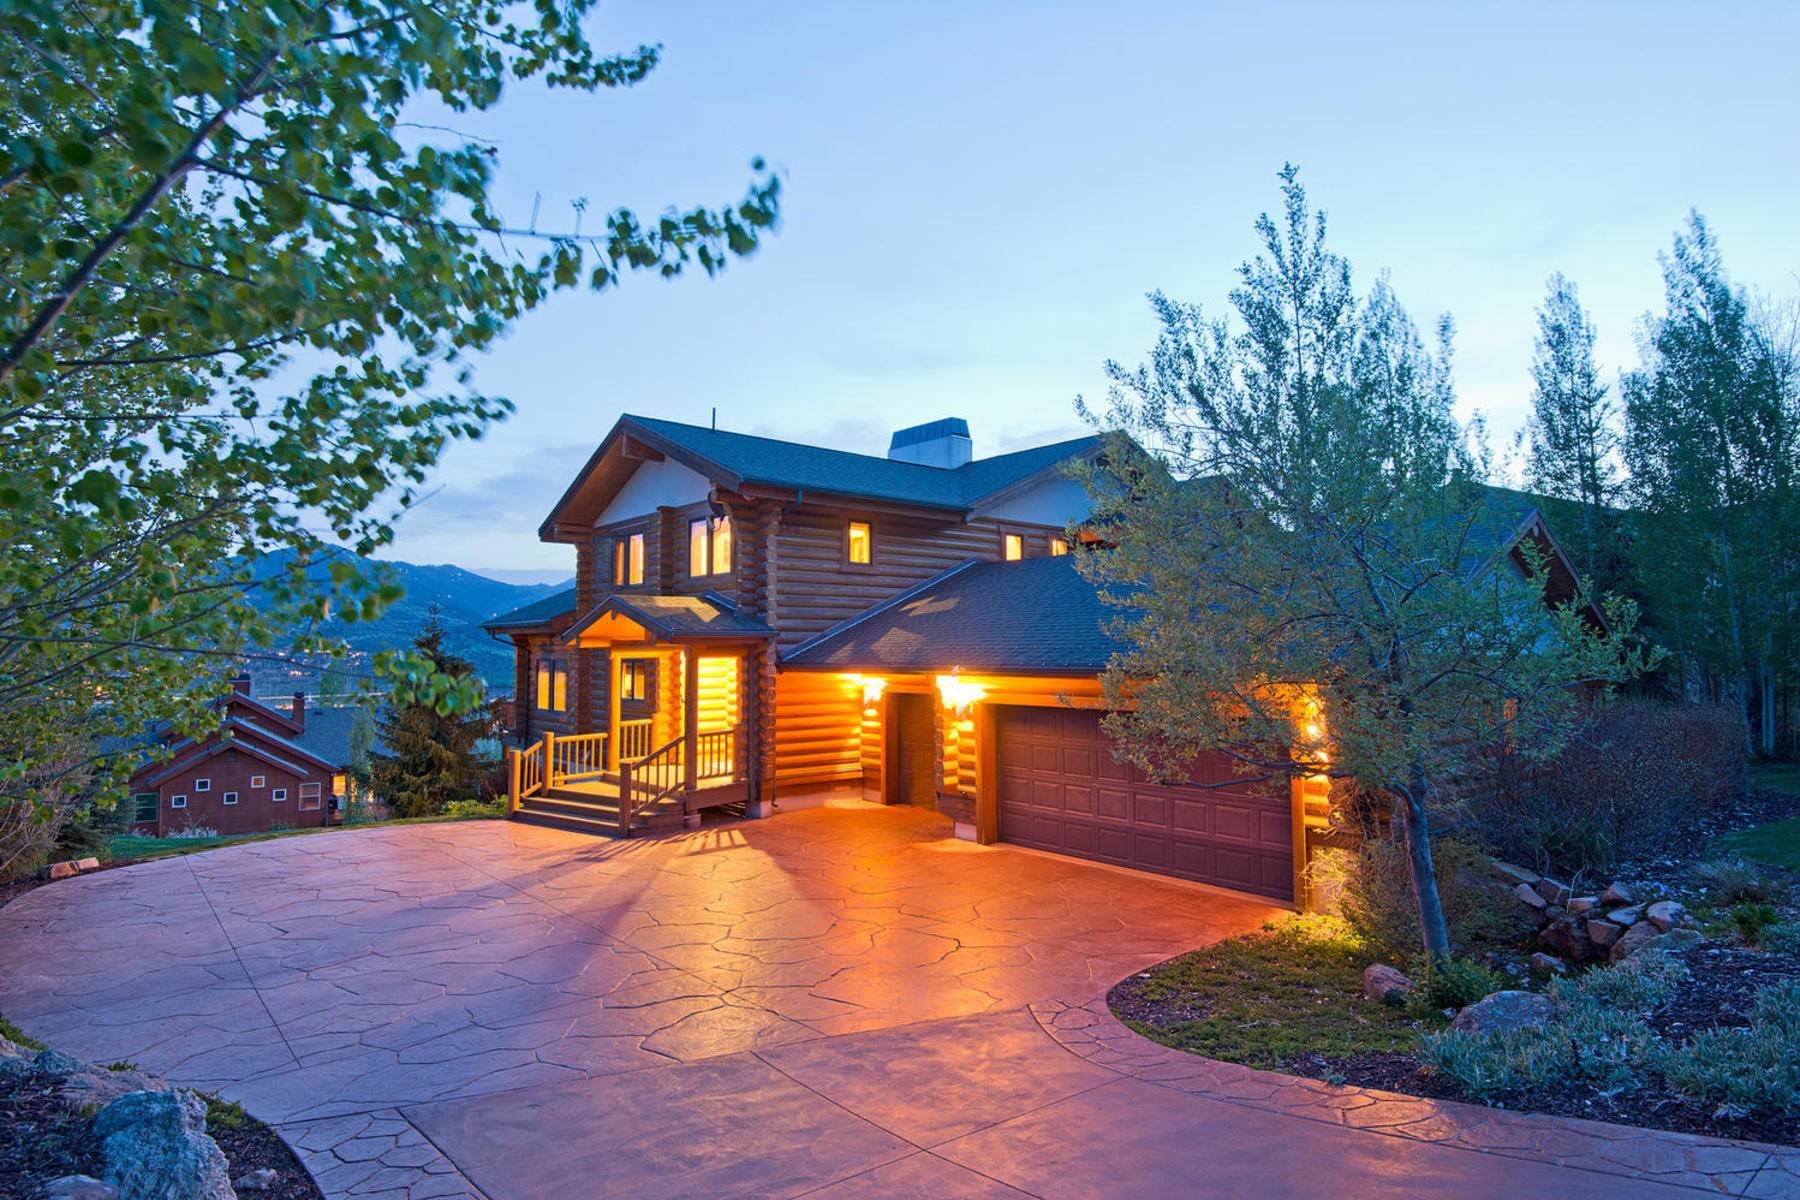 Additional photo for property listing at Updated Home with Wonderful Views & Private Yard 9143 N Flint Way Park City, Utah 84098 United States